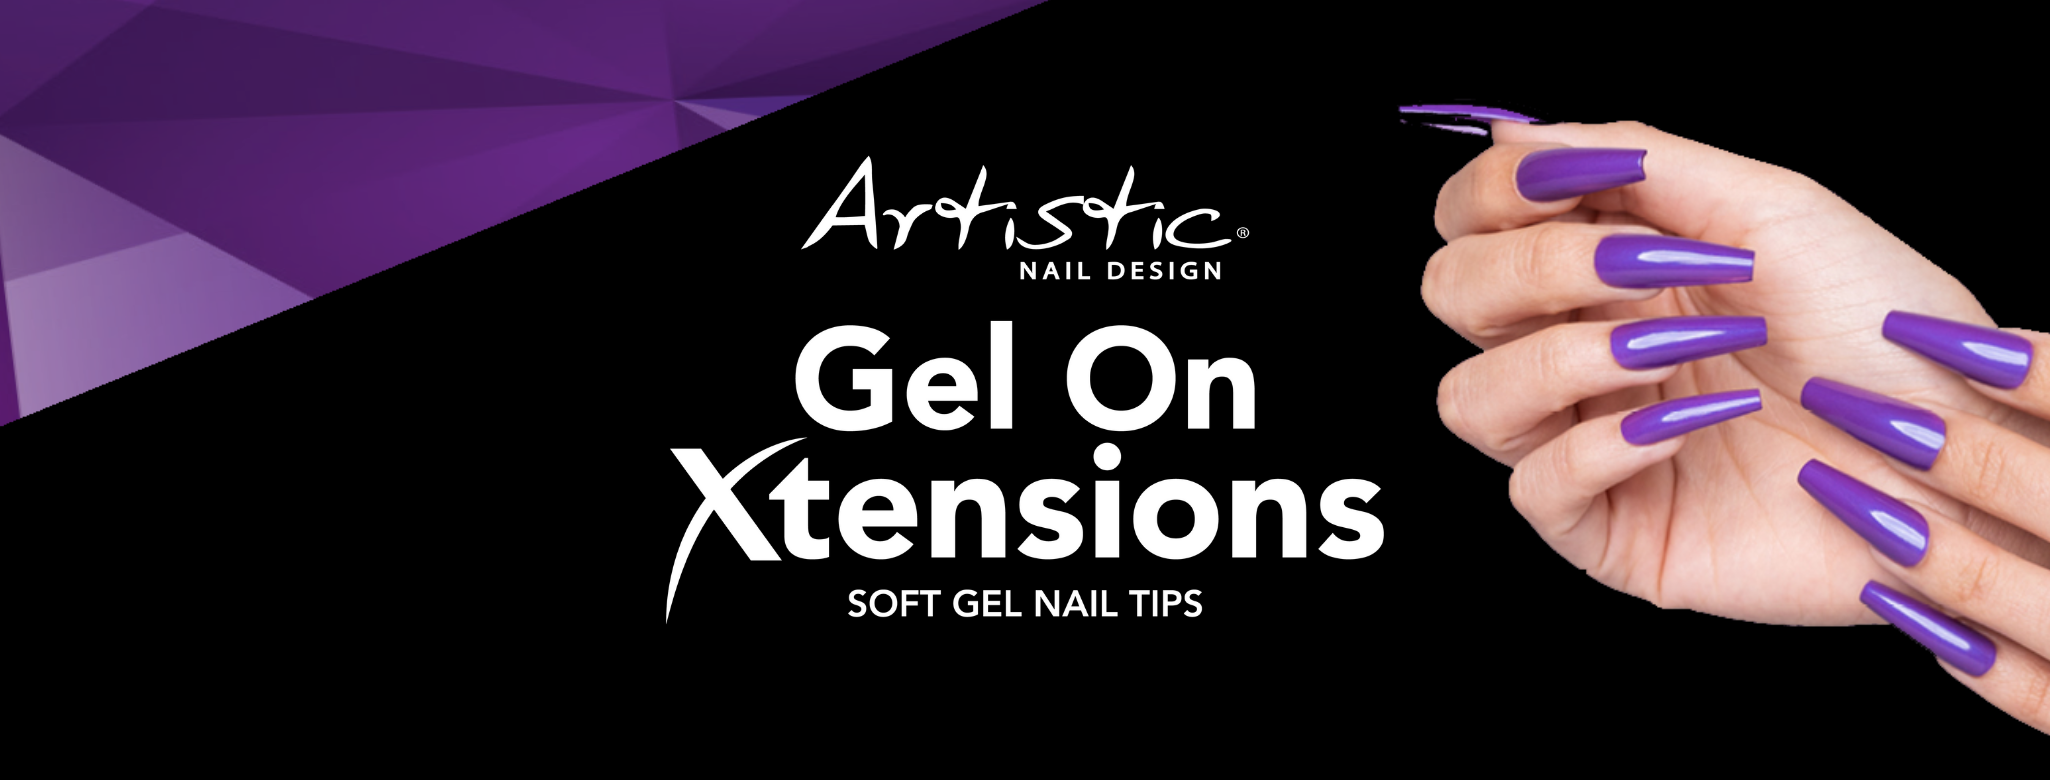 Introducing Gel On Xtensions From Artistic!